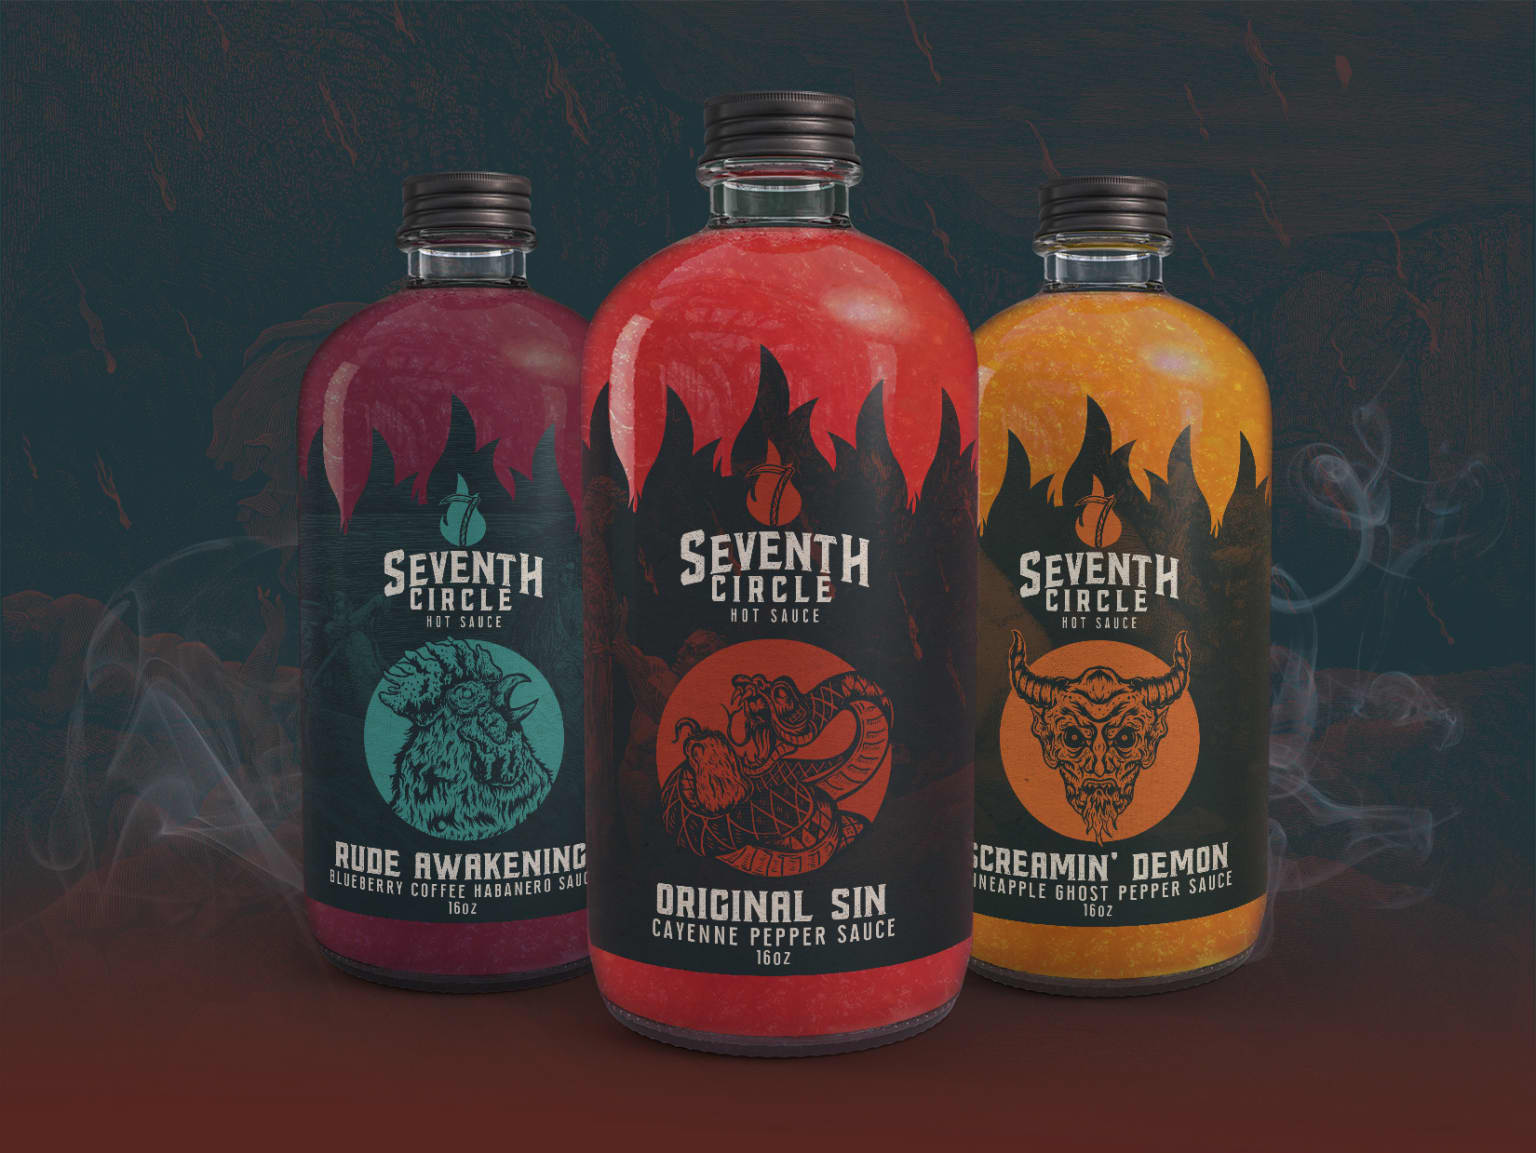 Seventh Circle Hot Sauce - Branding, Packaging, Collateral